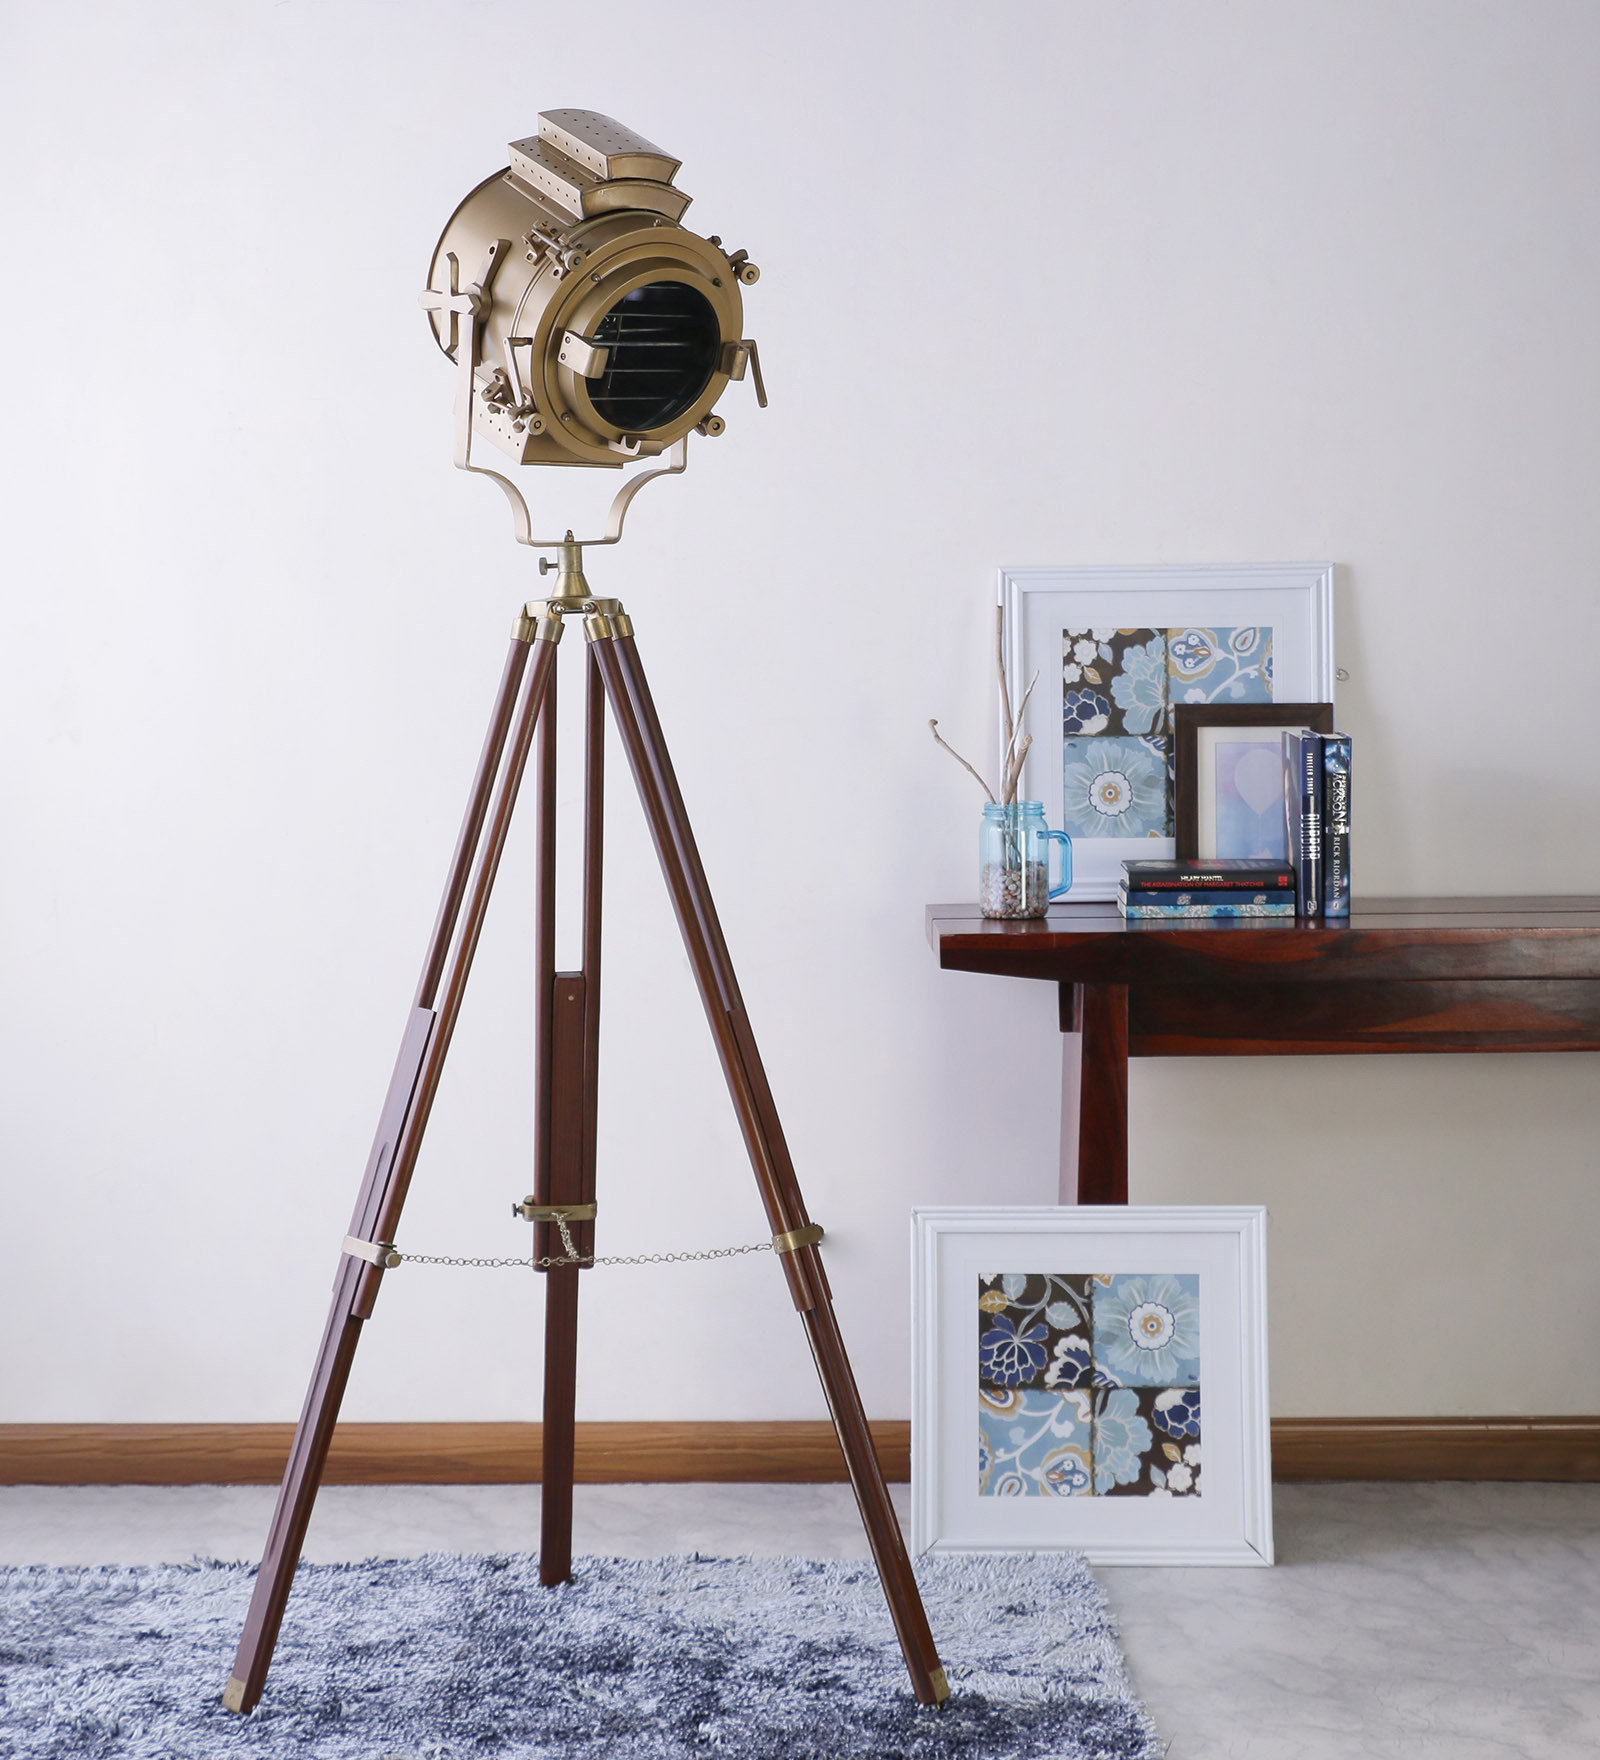 Sheesham Wood And Br Tripod Floor Lamp Vintage Decor By Anikcart View